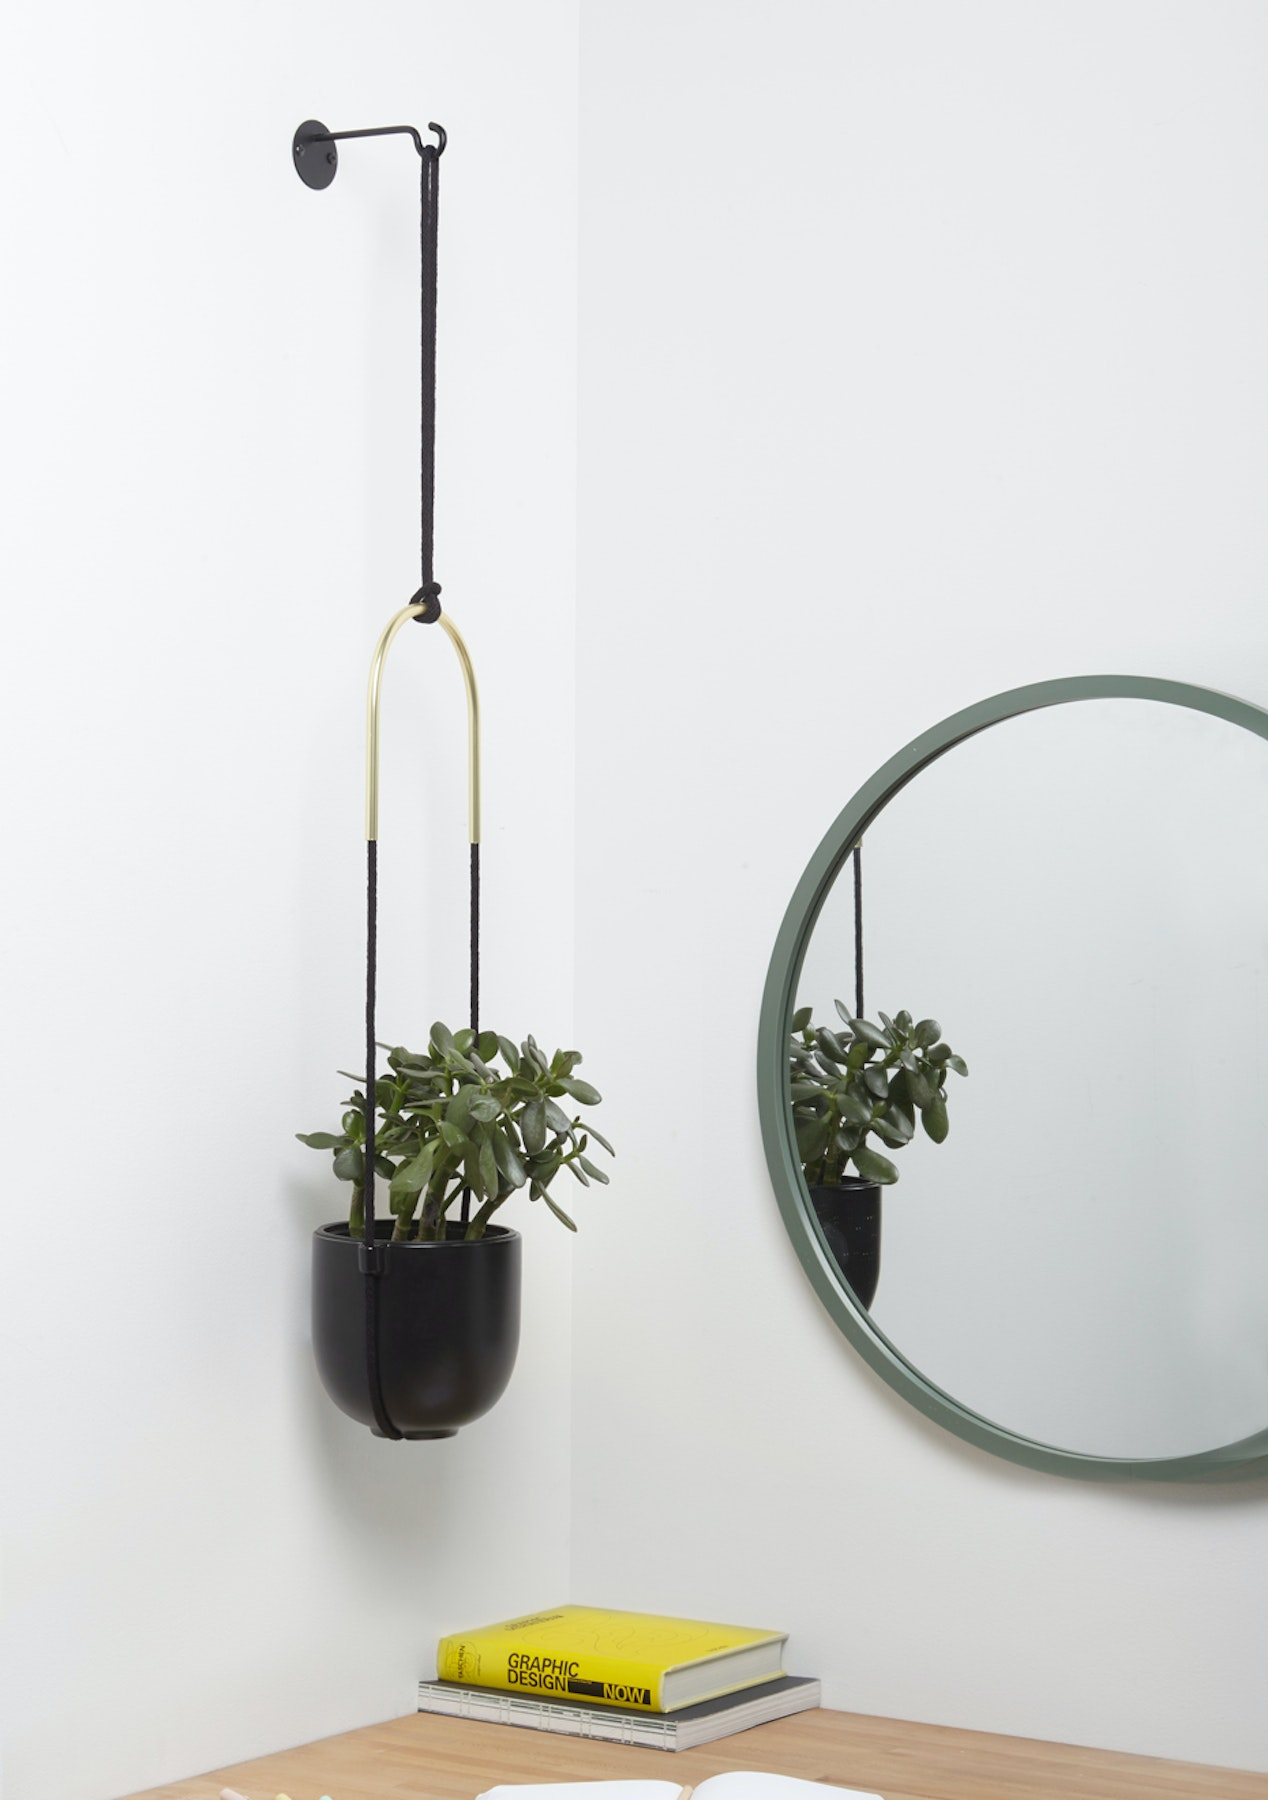 Umbra - Bolo Hanging Planter - Black - Stylish Gifts for the Home - Onceit